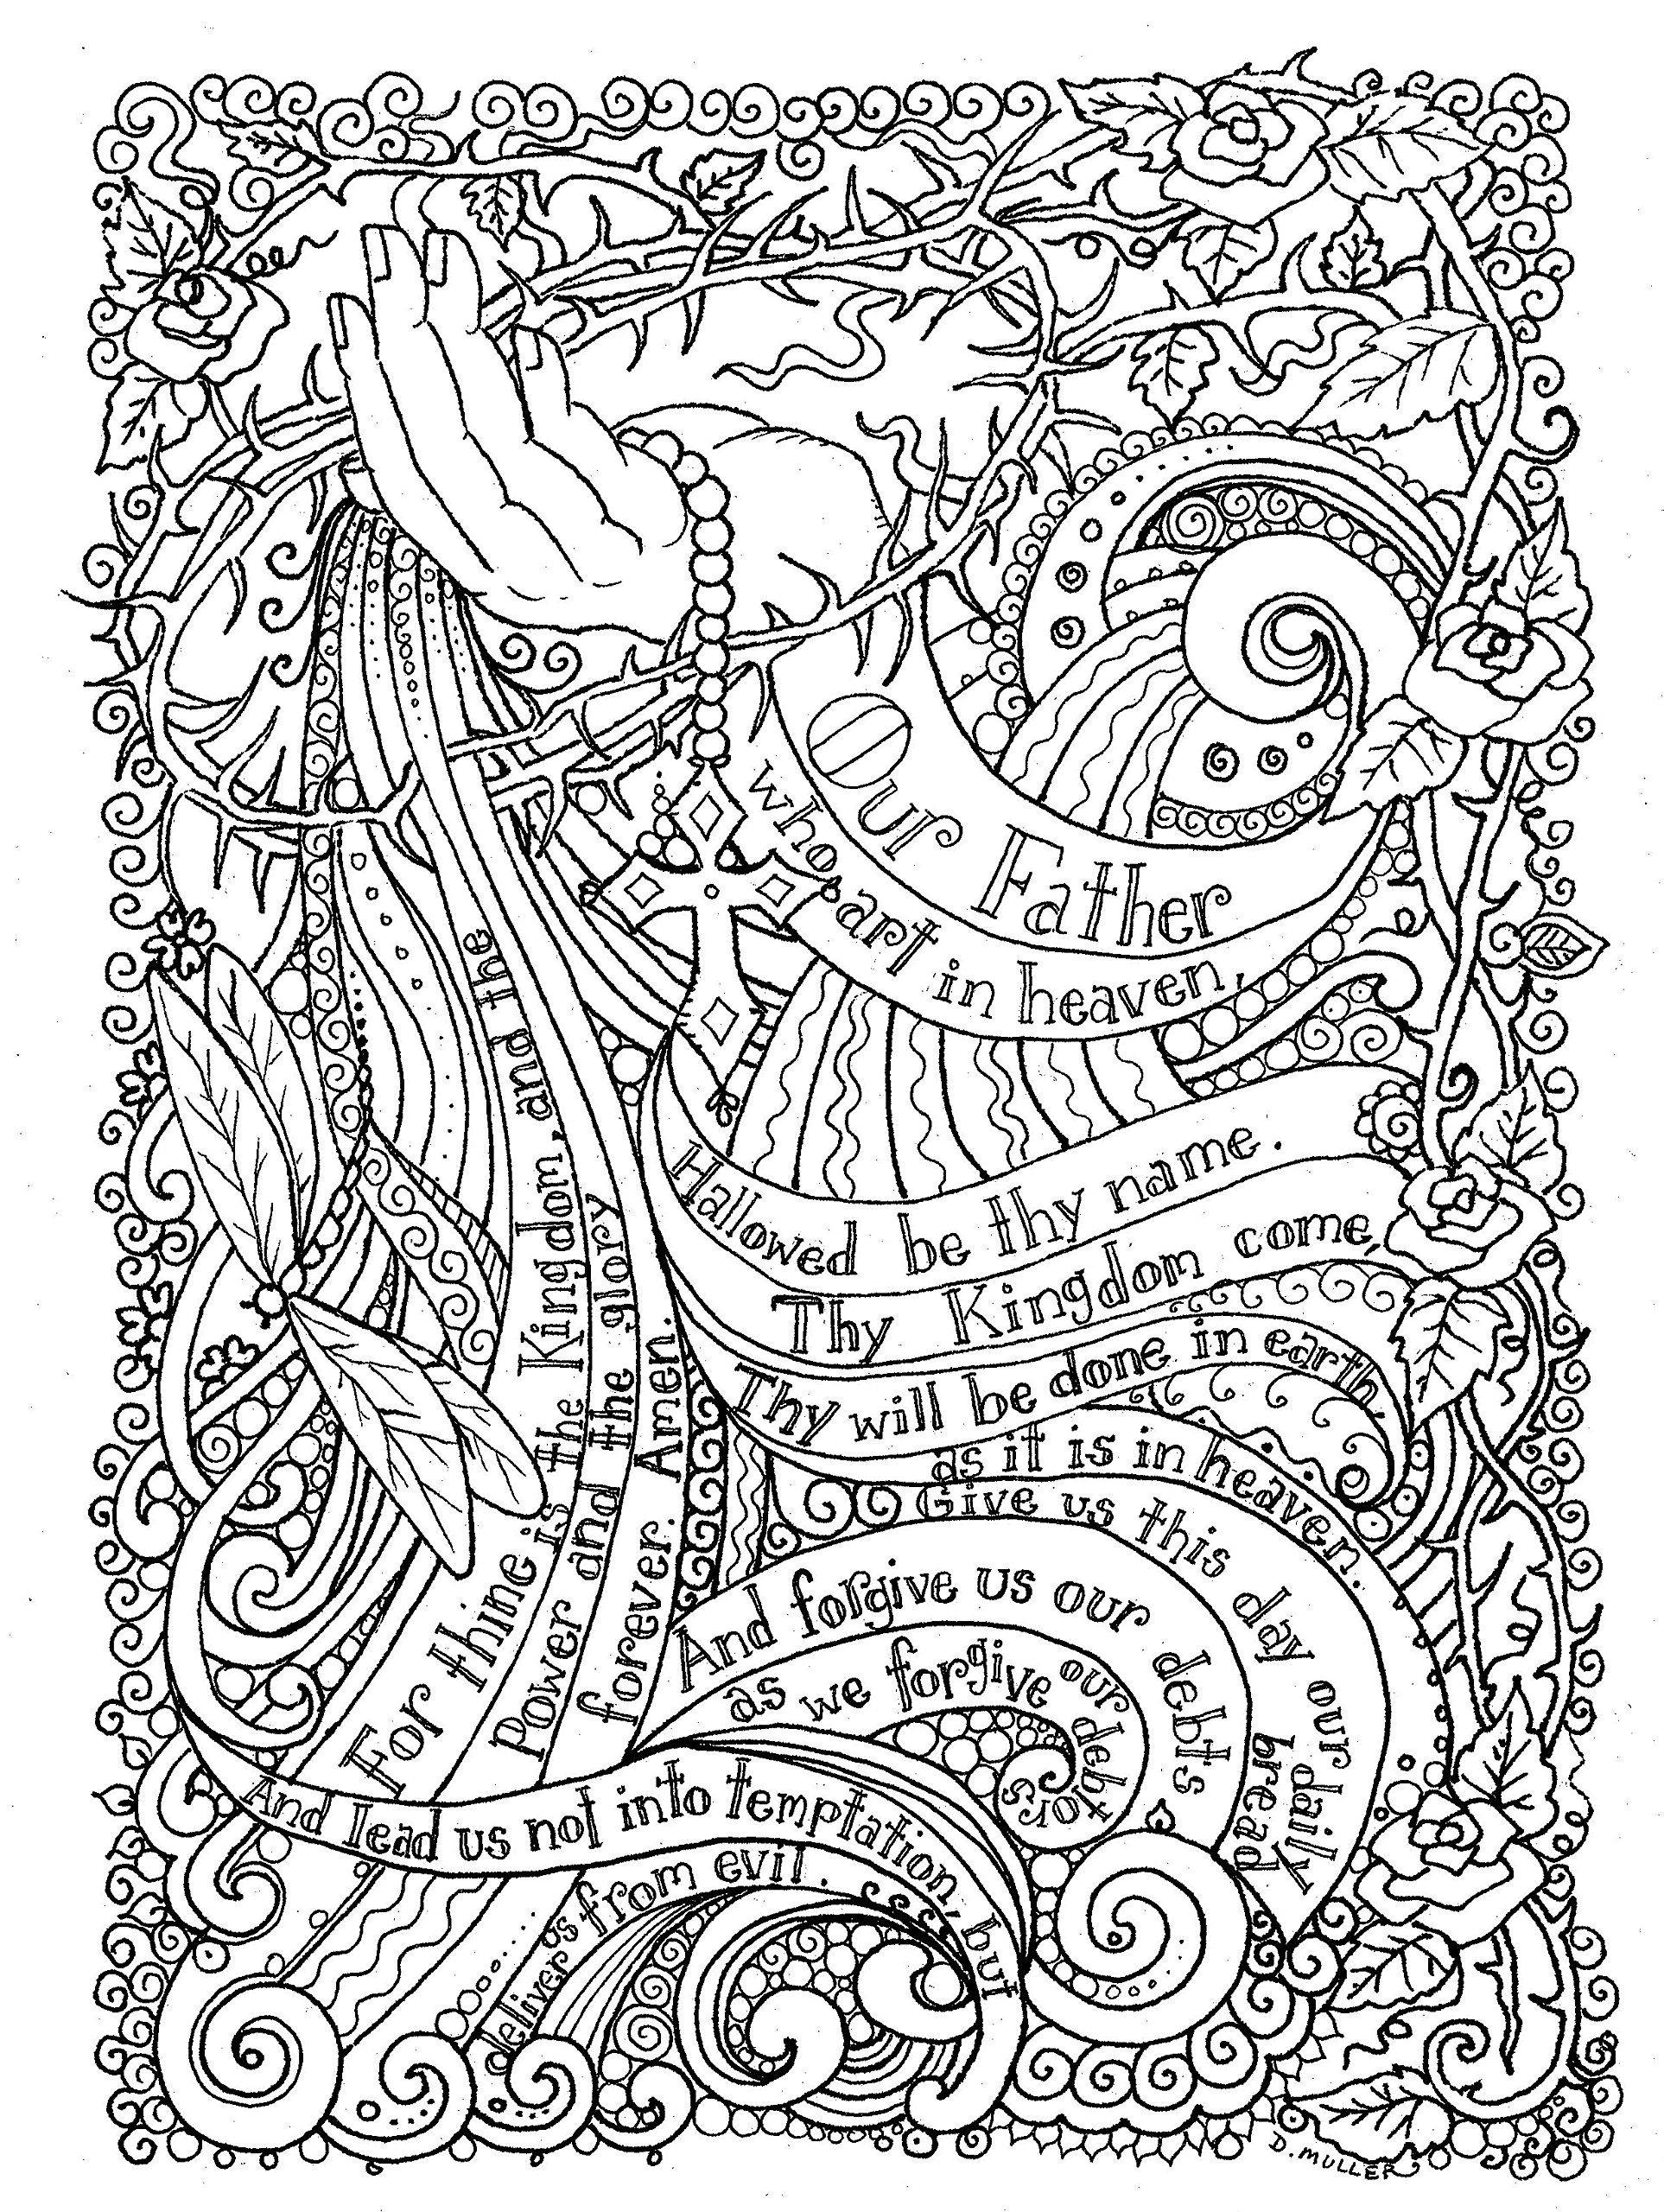 The Heroes of the Bible Coloring Pages: Deborah | Bible lessons ... | 2560x1926